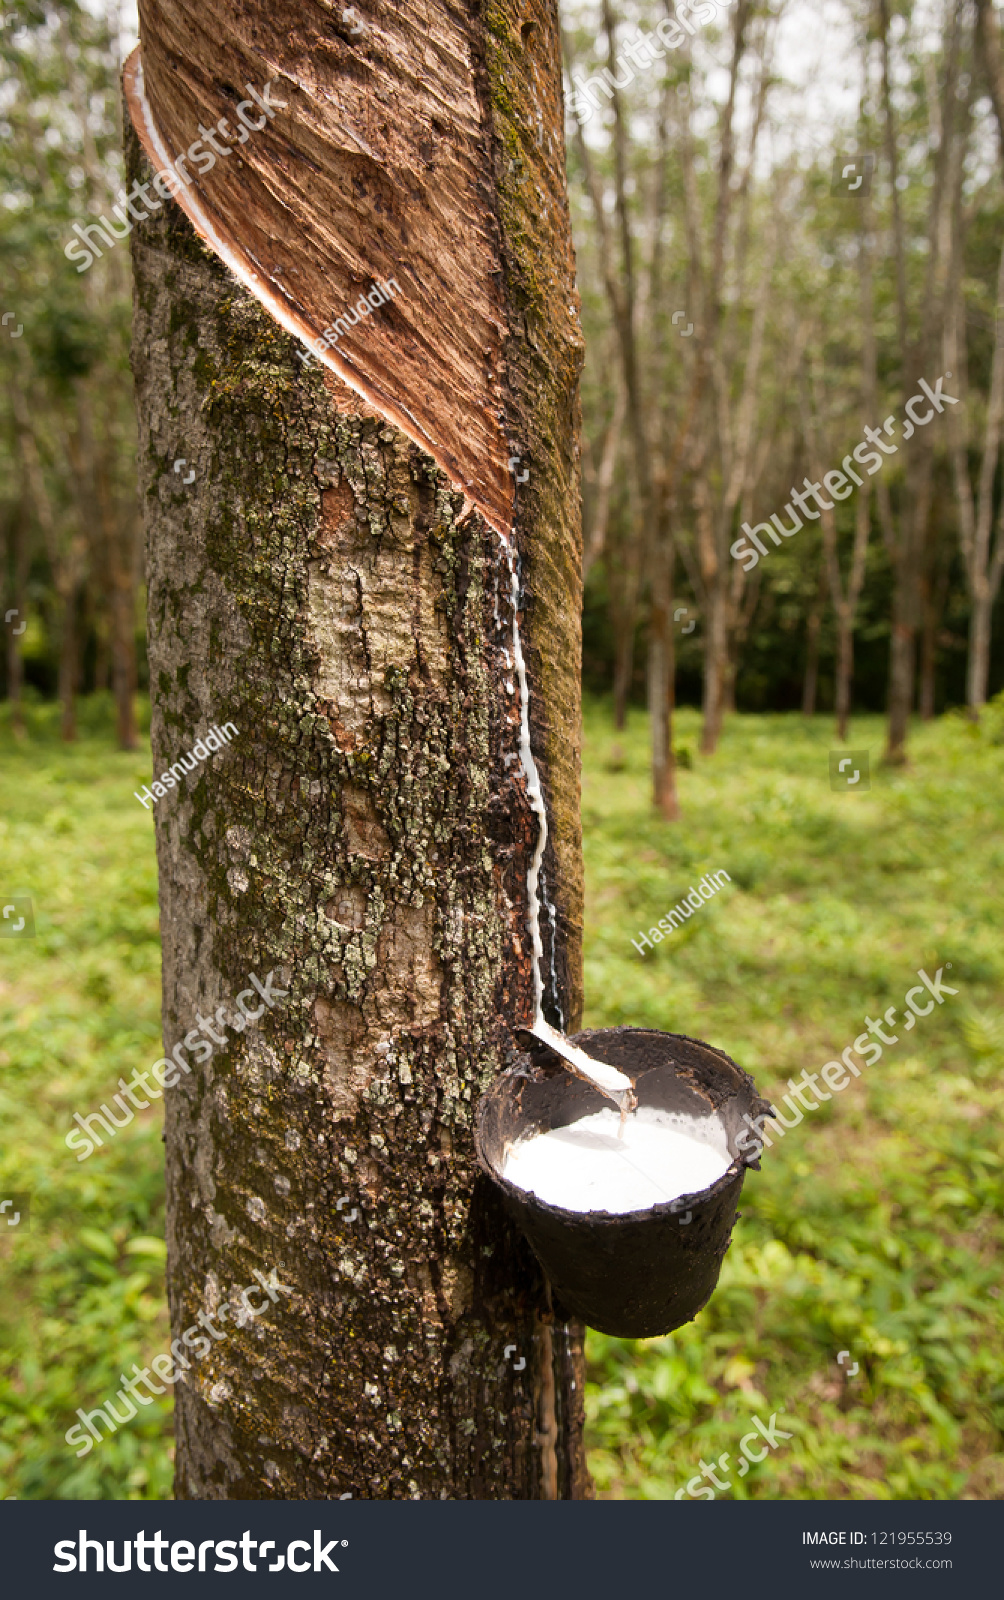 Latex rubber fromhevea brasiliensis